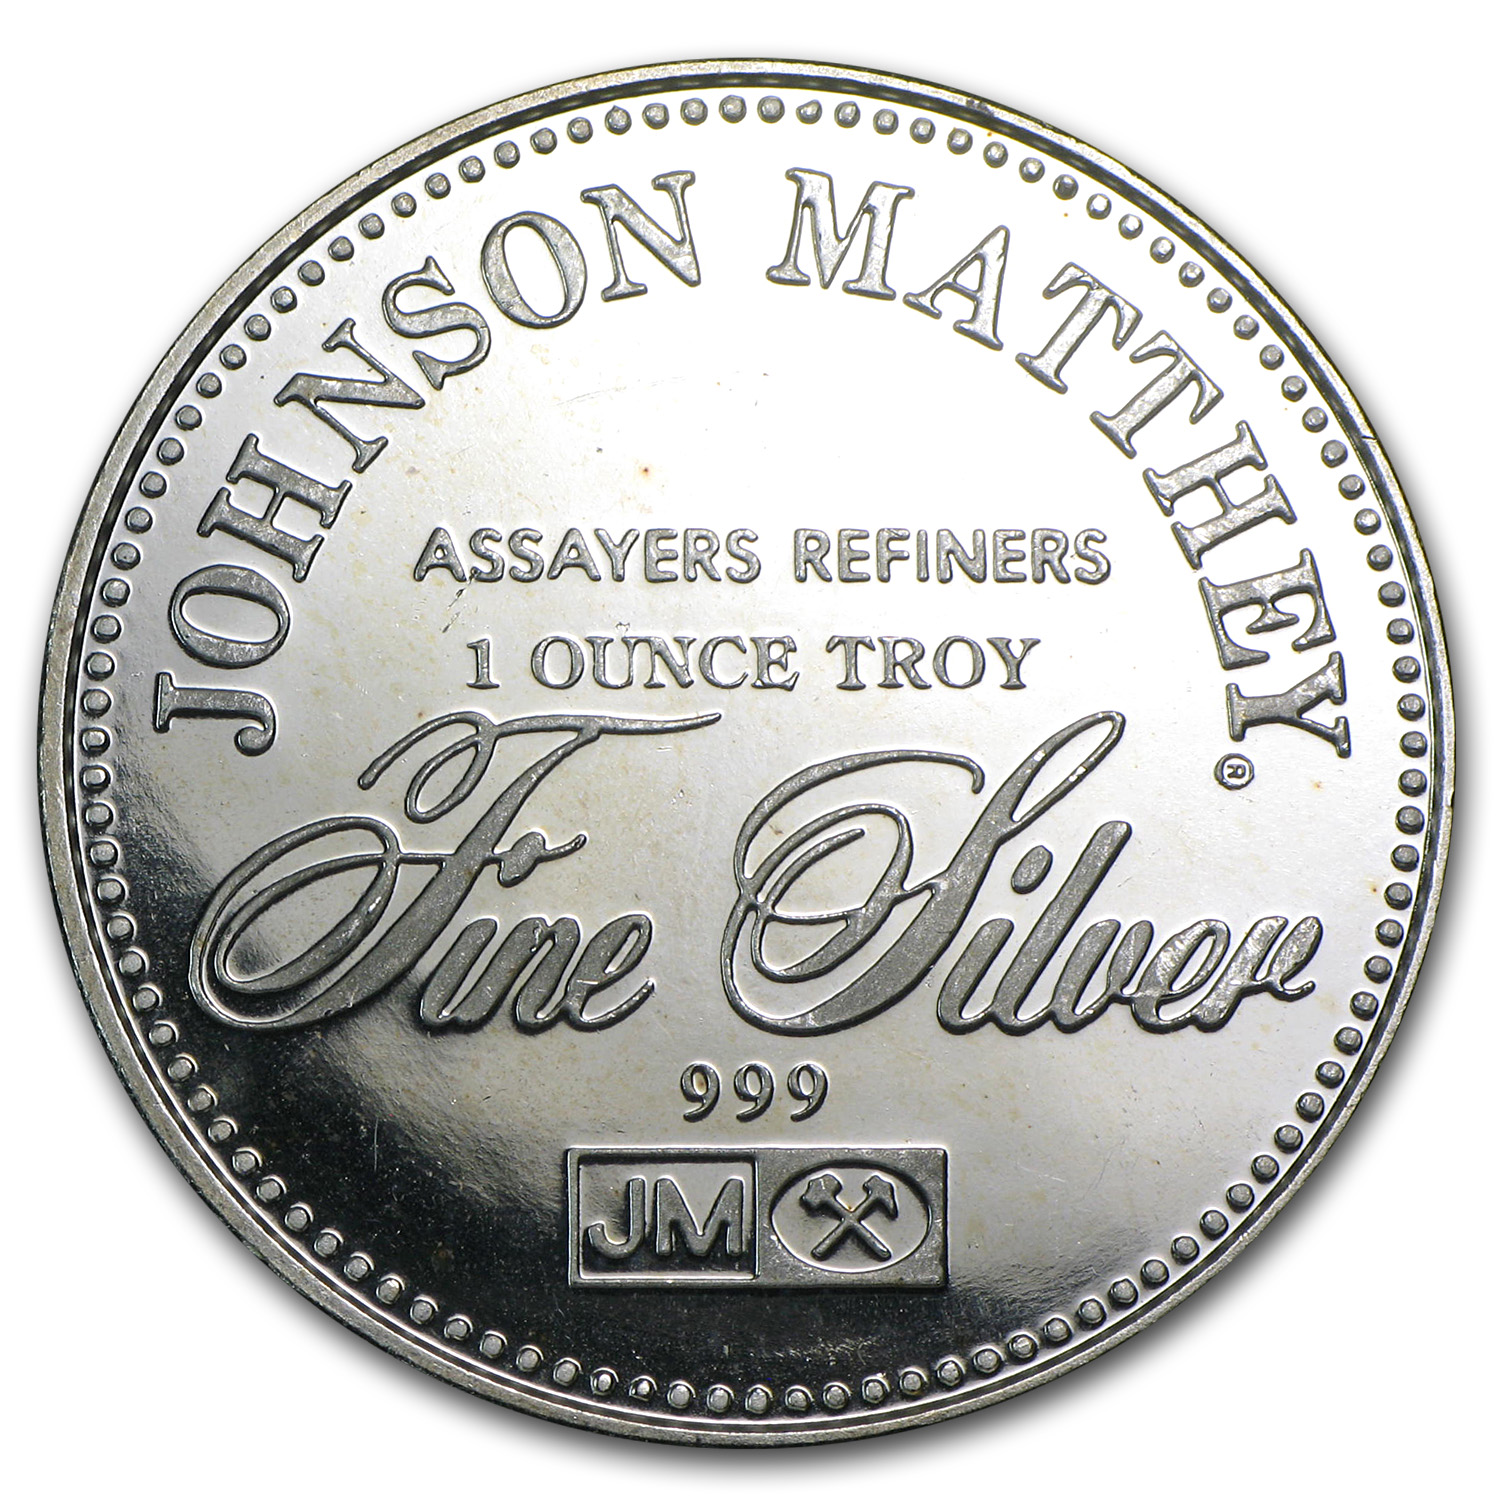 1 oz Silver Rounds - Johnson Matthey (Sealed/Right to Counsel)